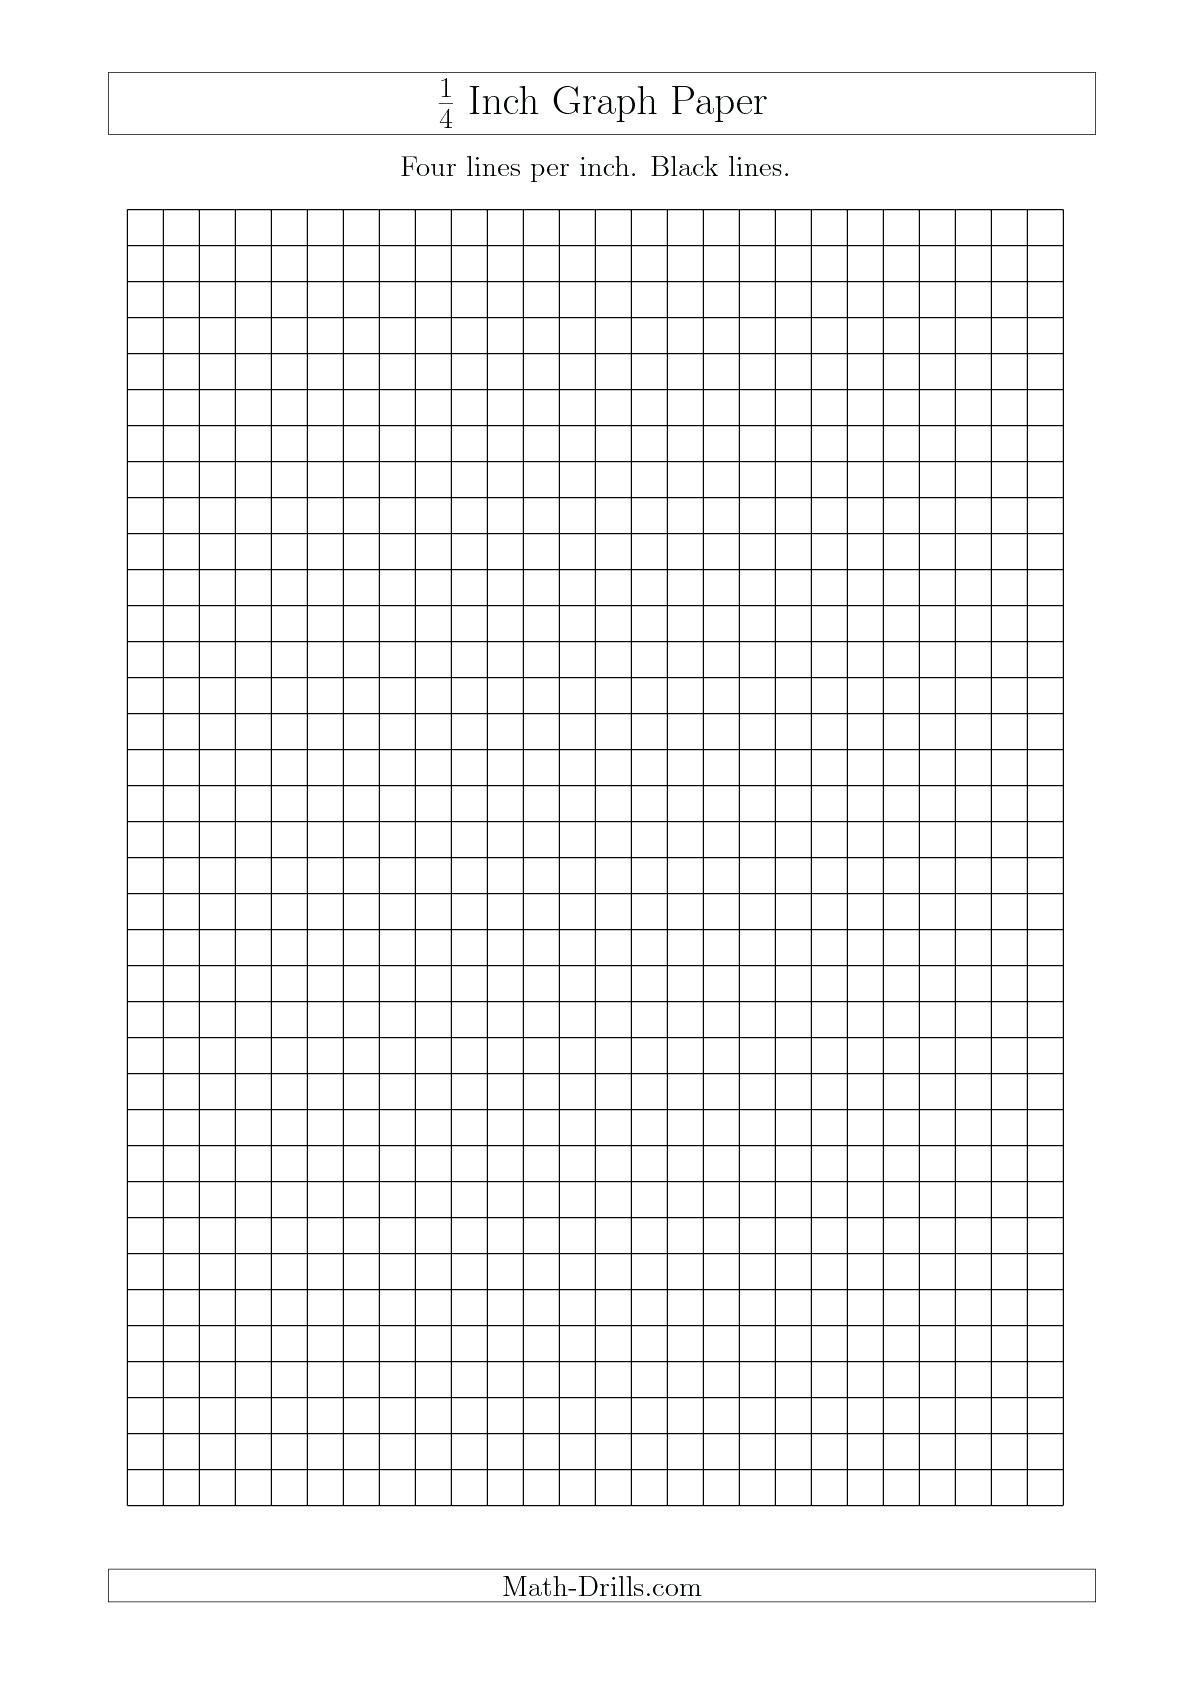 Printable Graph Paper 1 4 Inch Math 1 4 Grid Paper Printable Print - Free Printable Graph Paper 1 4 Inch